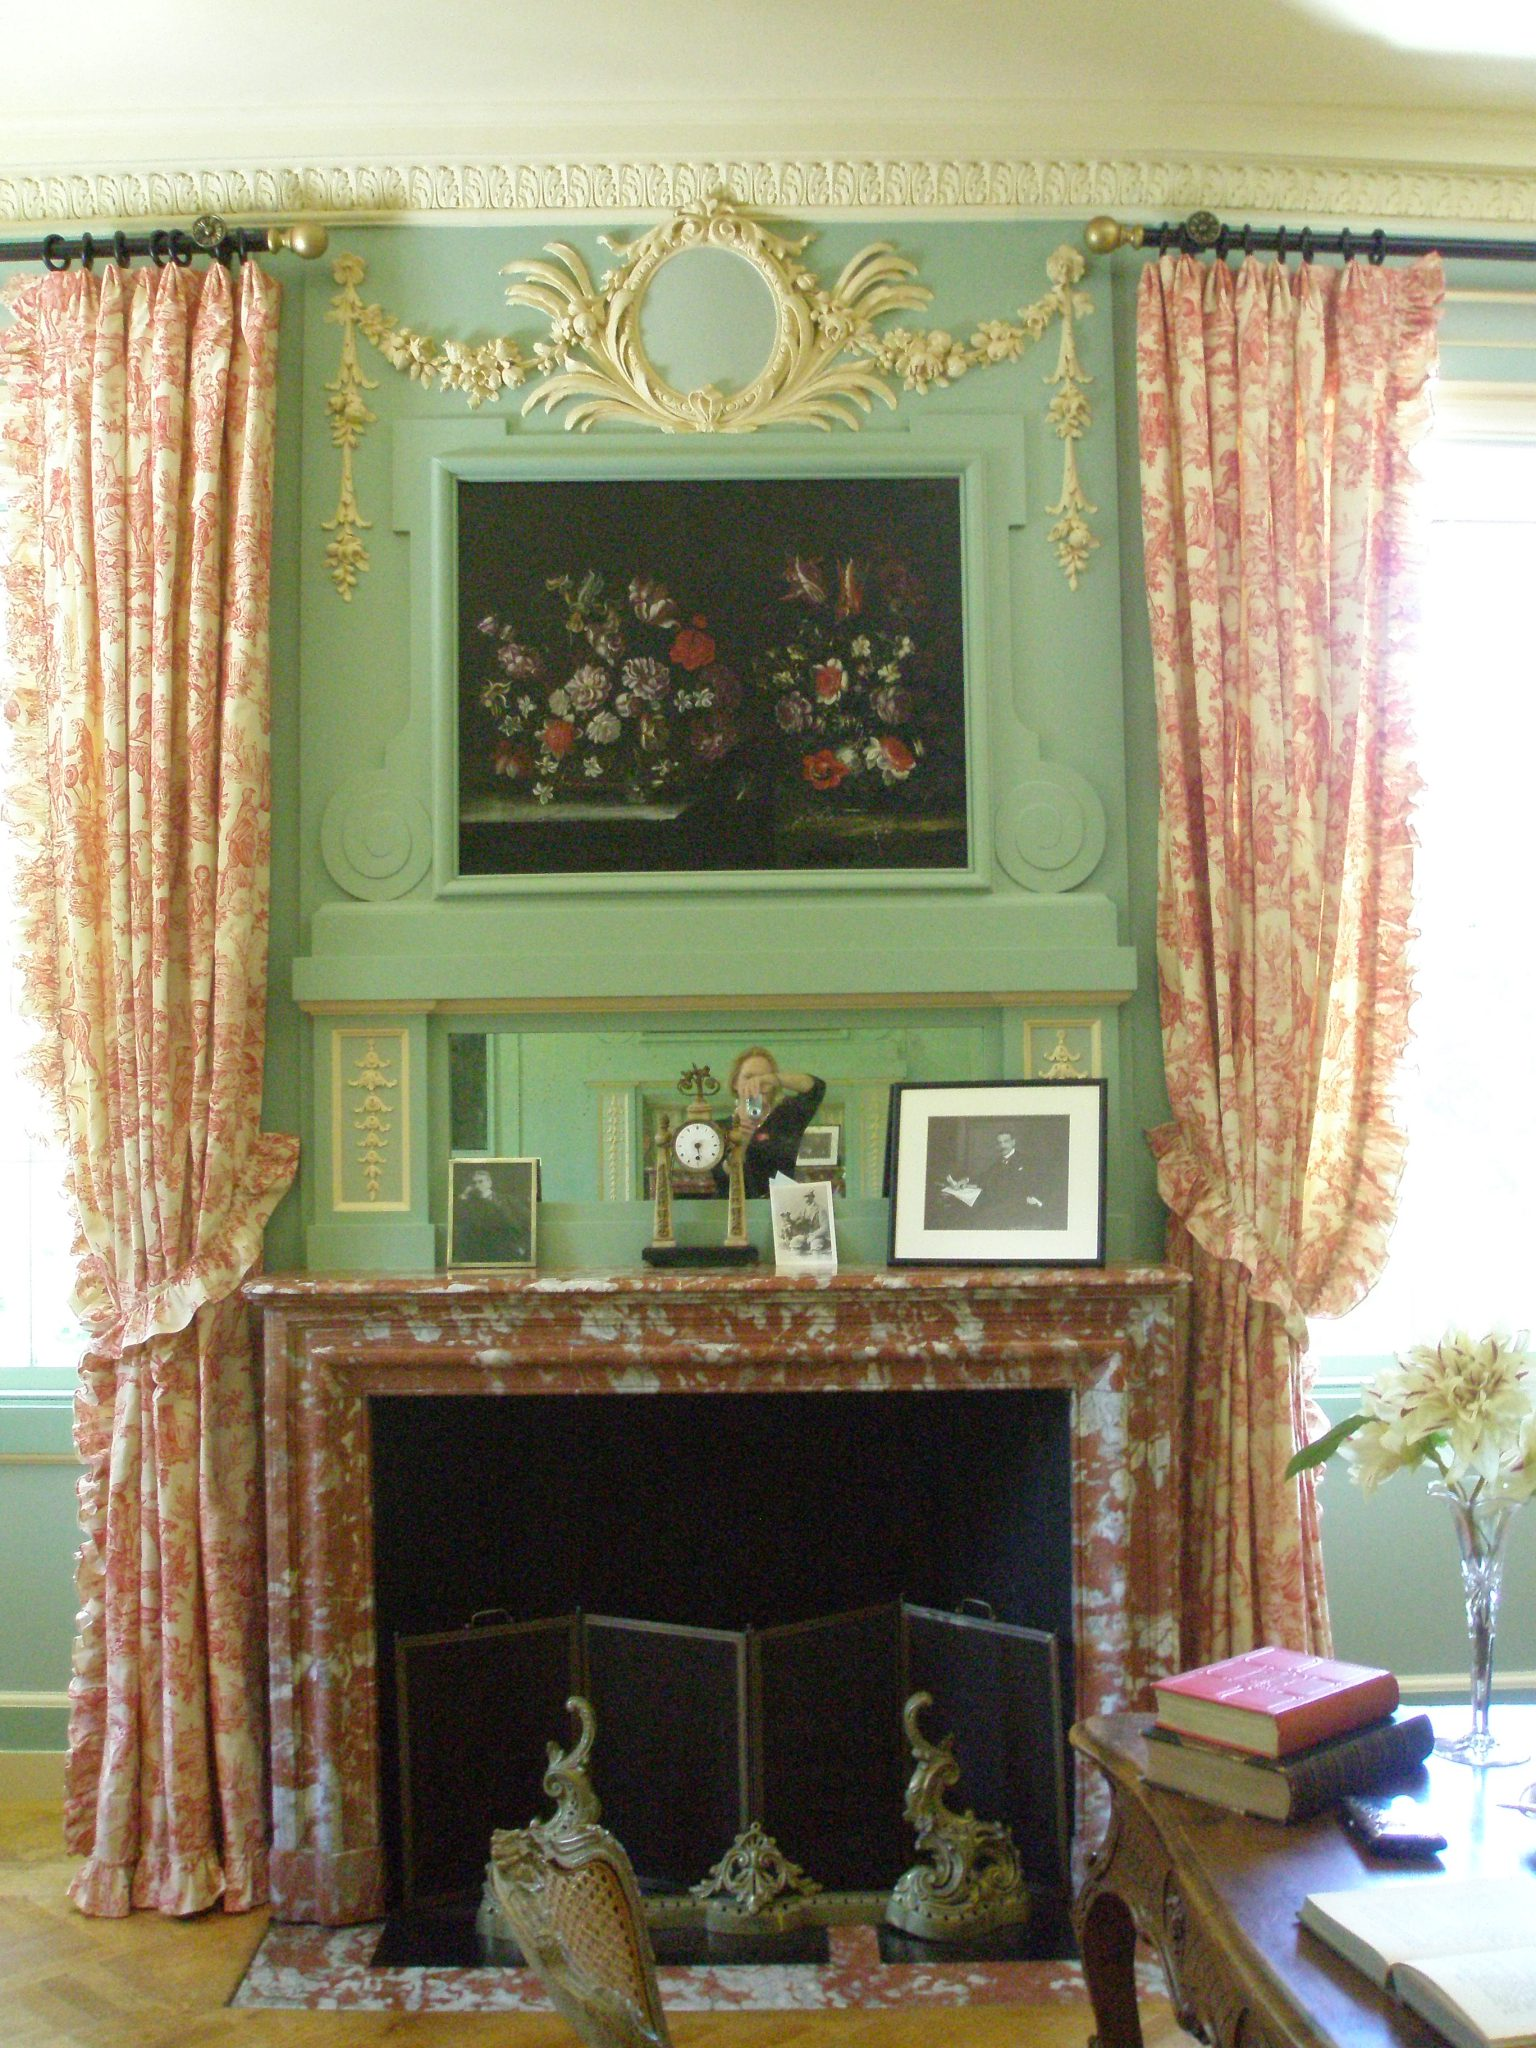 Mantle in the Boudoir